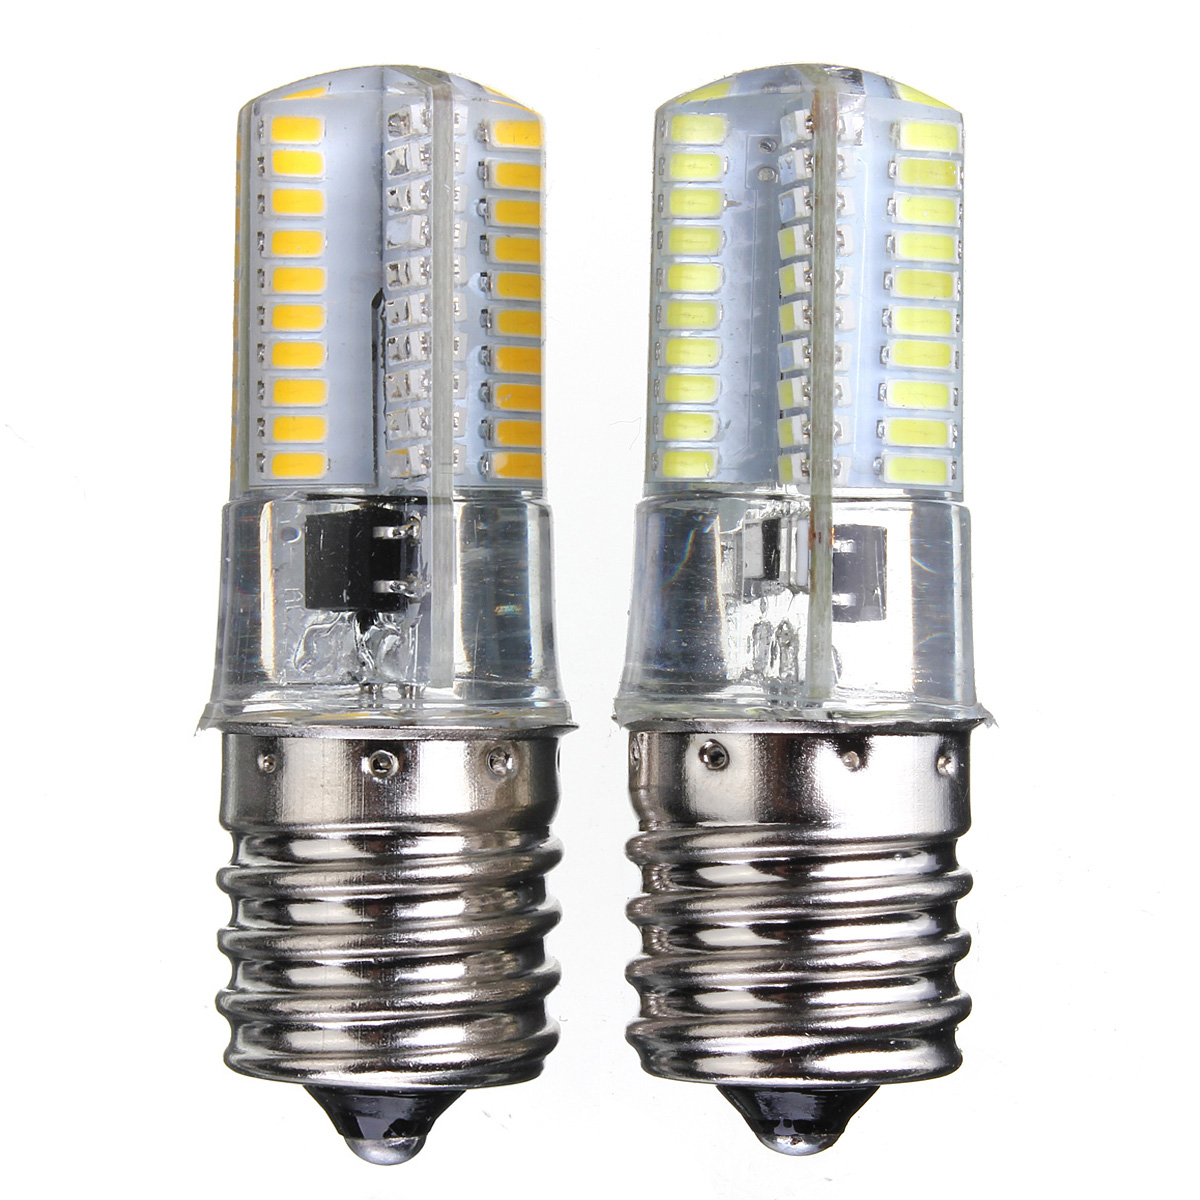 ampoule g4 g9 e12 e14 e17 ba15d dimmable 80 led 3014 smd silicone bulb lampe new ebay. Black Bedroom Furniture Sets. Home Design Ideas